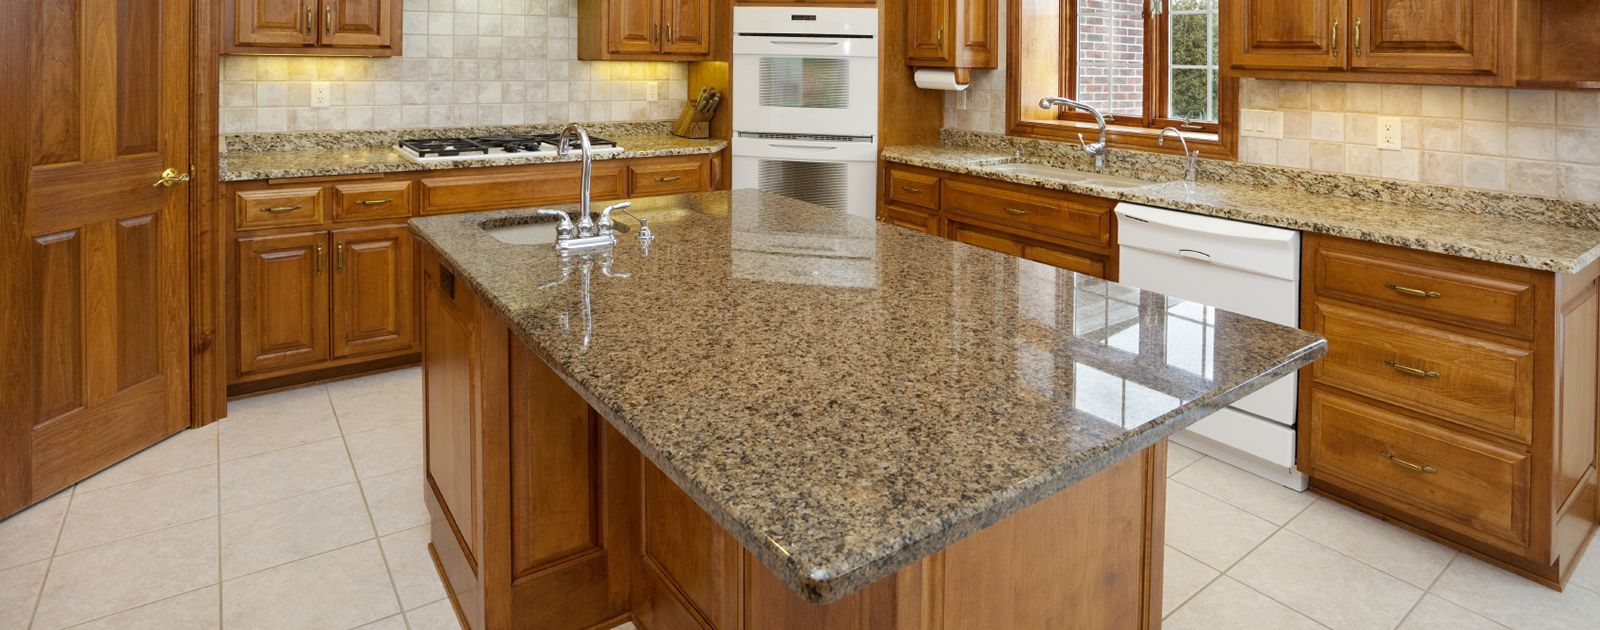 Twin Cities Top Rated Discount Granite Countertop Installation   Nature U0027 S  Stone! Description From